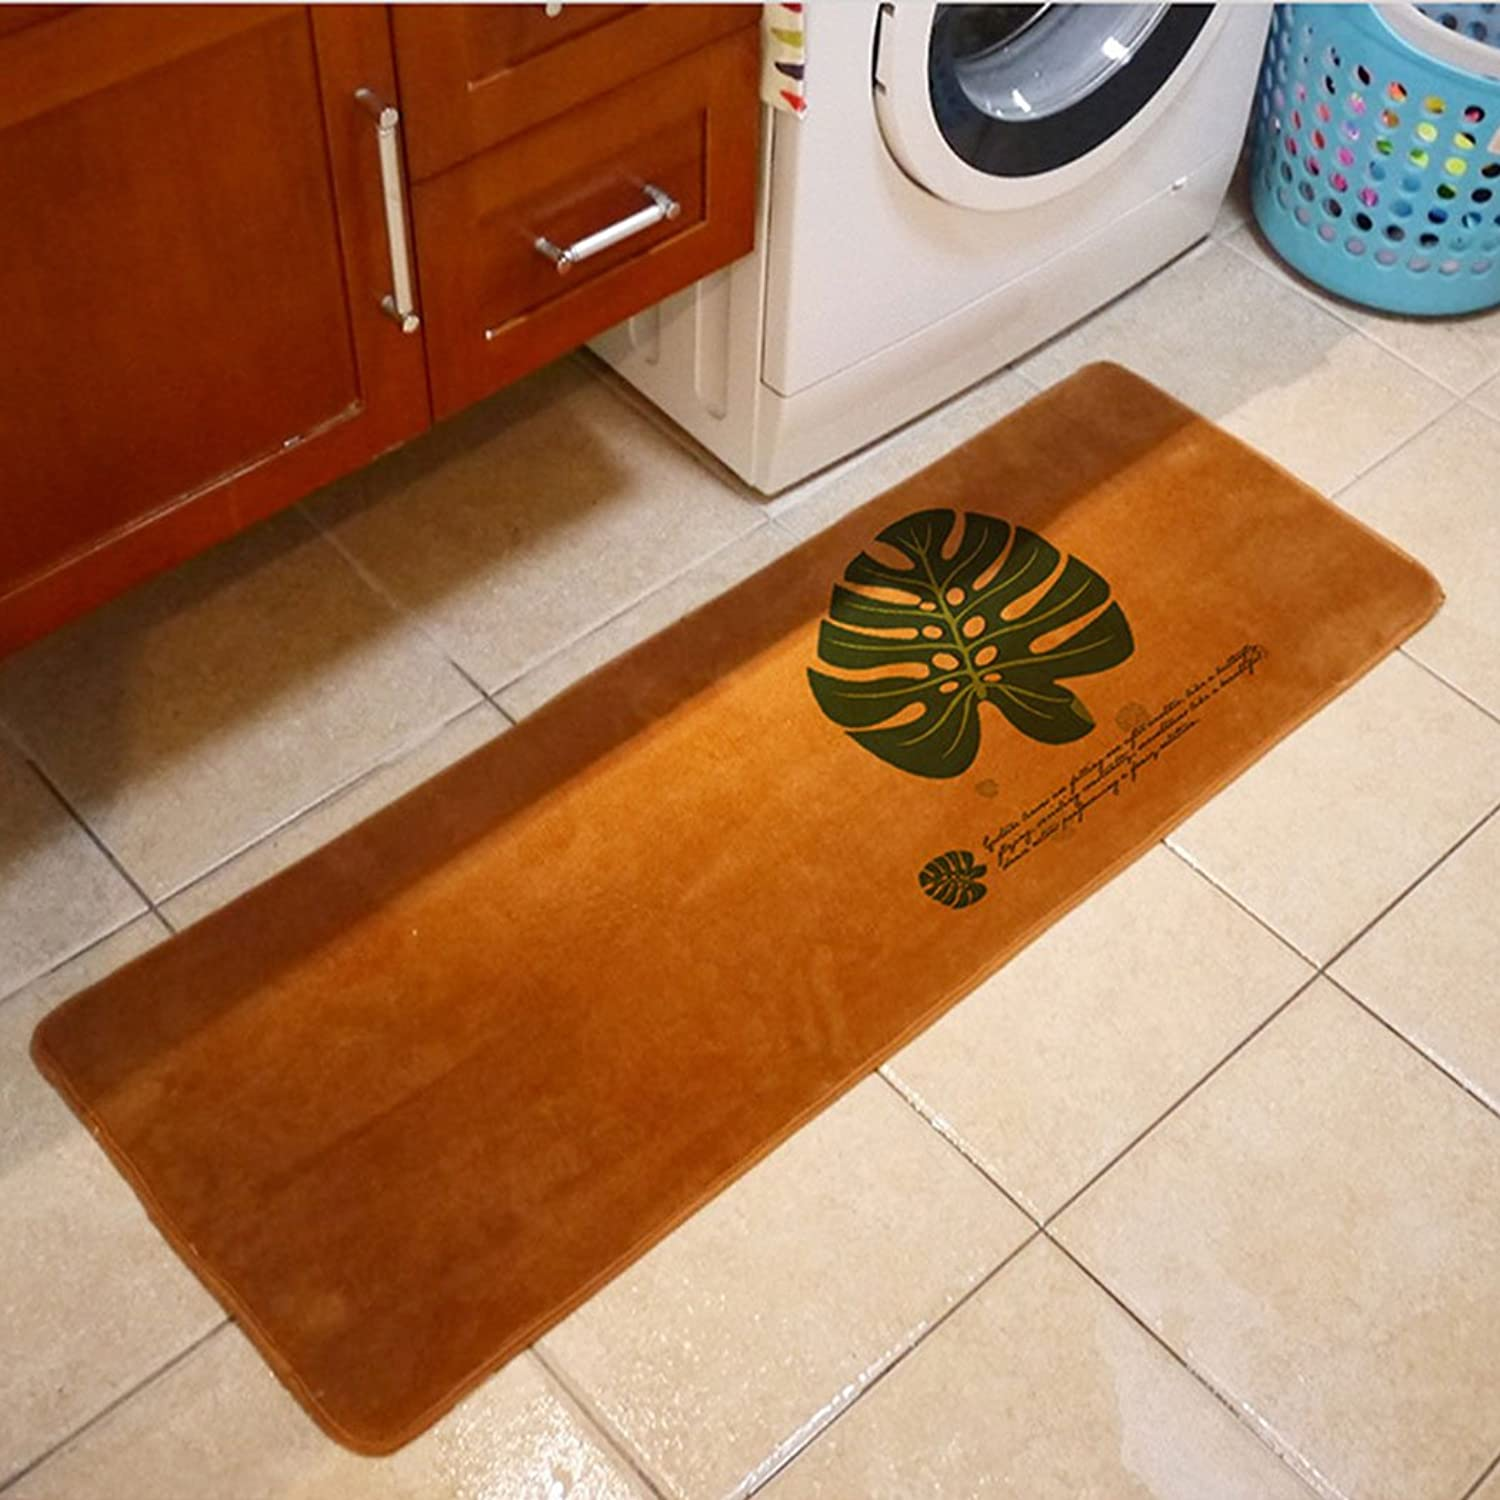 SUN-Shine Durable Home and Kitchen Rug Runners with Non-Slip Rubber Backing Indoor Doormats Floor Mat Carpet, Tropical Palm Leaf Khaki